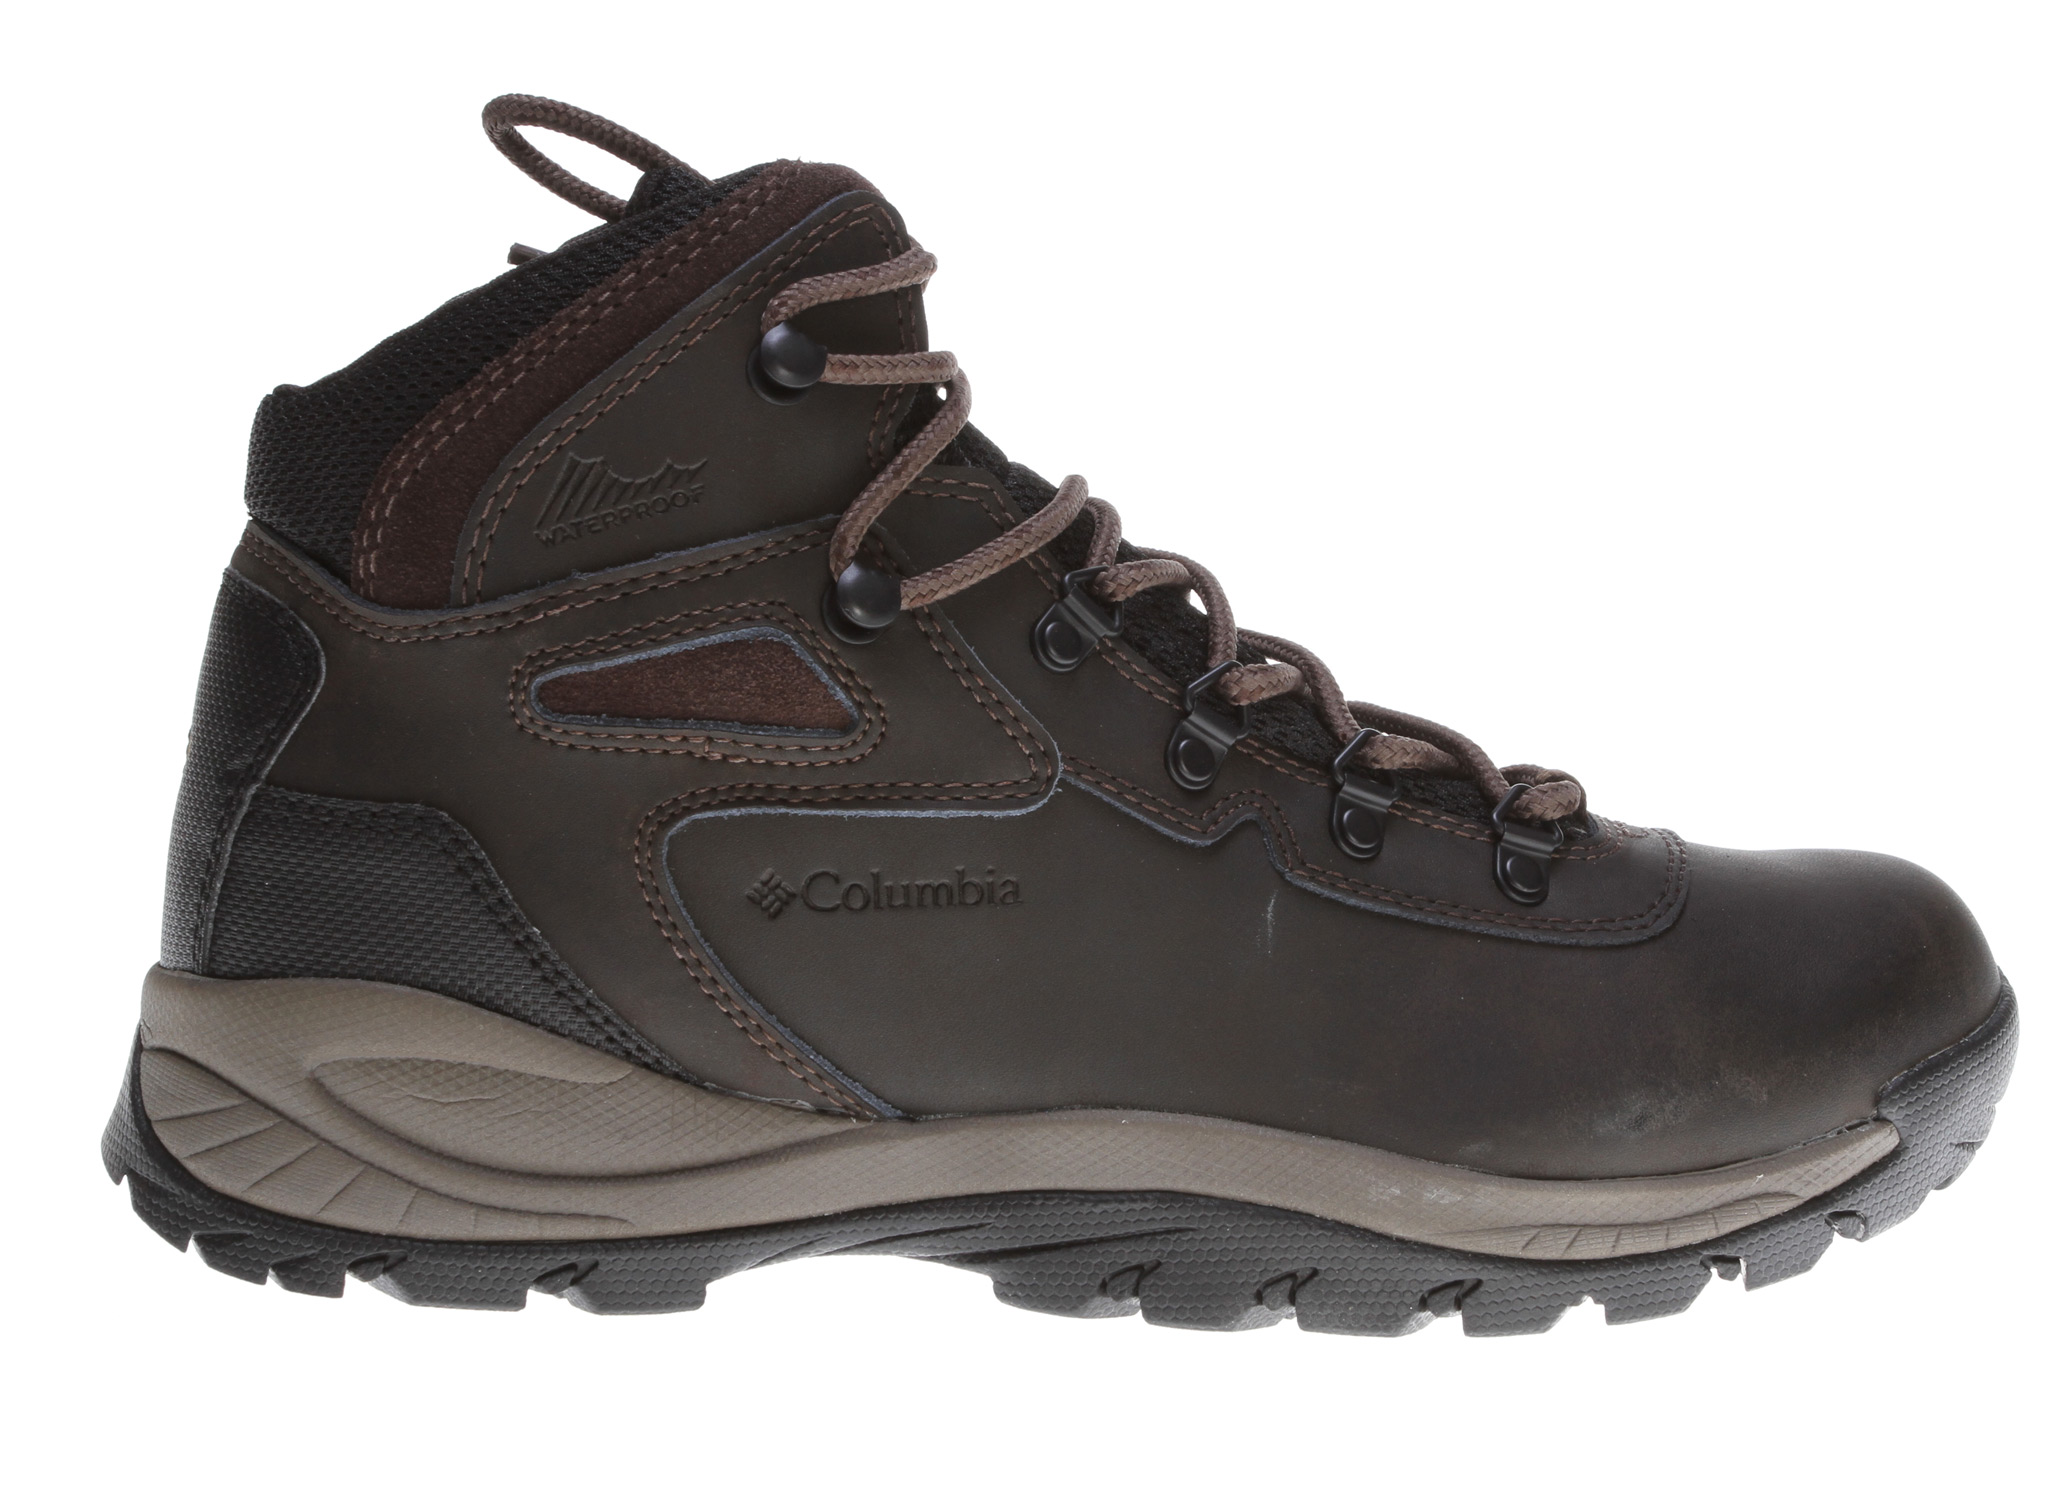 Camp and Hike Key Features of the Columbia Newton Ridge Plus Mid Shoes: MIDSOLE: EVA Molded EVA OUTSOLE: Rubber, Non-marking UPPER: Leather Waterproof STYLE: Ankle High Waterproof - $71.91